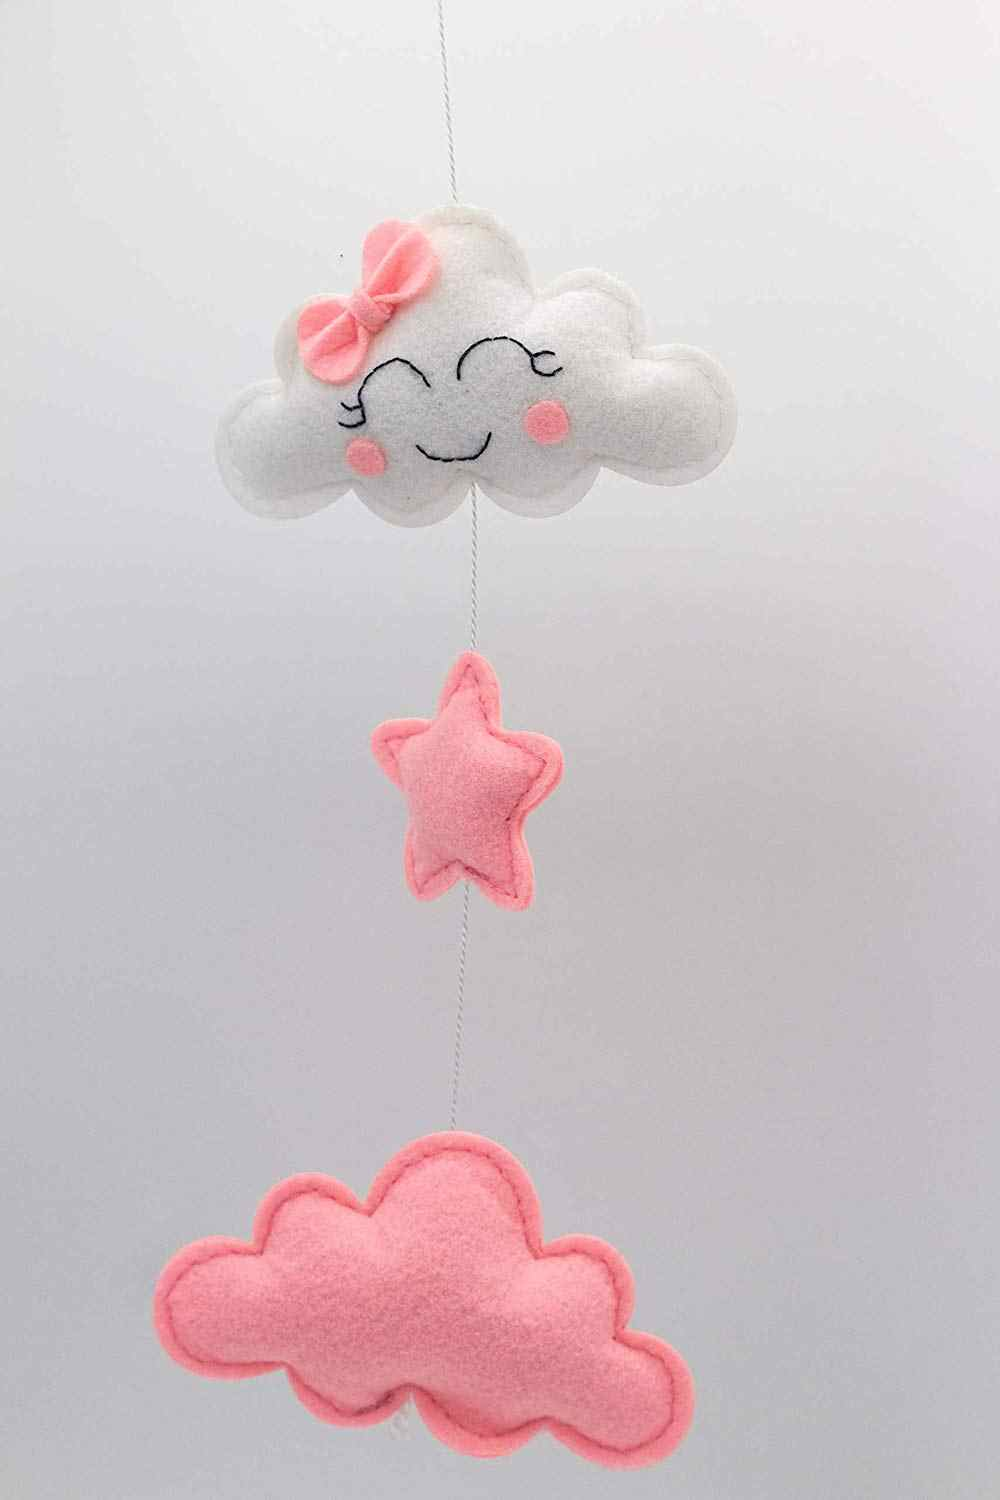 80044243d936d Baby Mobile for Crib Felt, Hanging Toys, Nursery Decor for Girls   White &  Pink Room Decorations, Clouds, Moons & Stars   Safe,